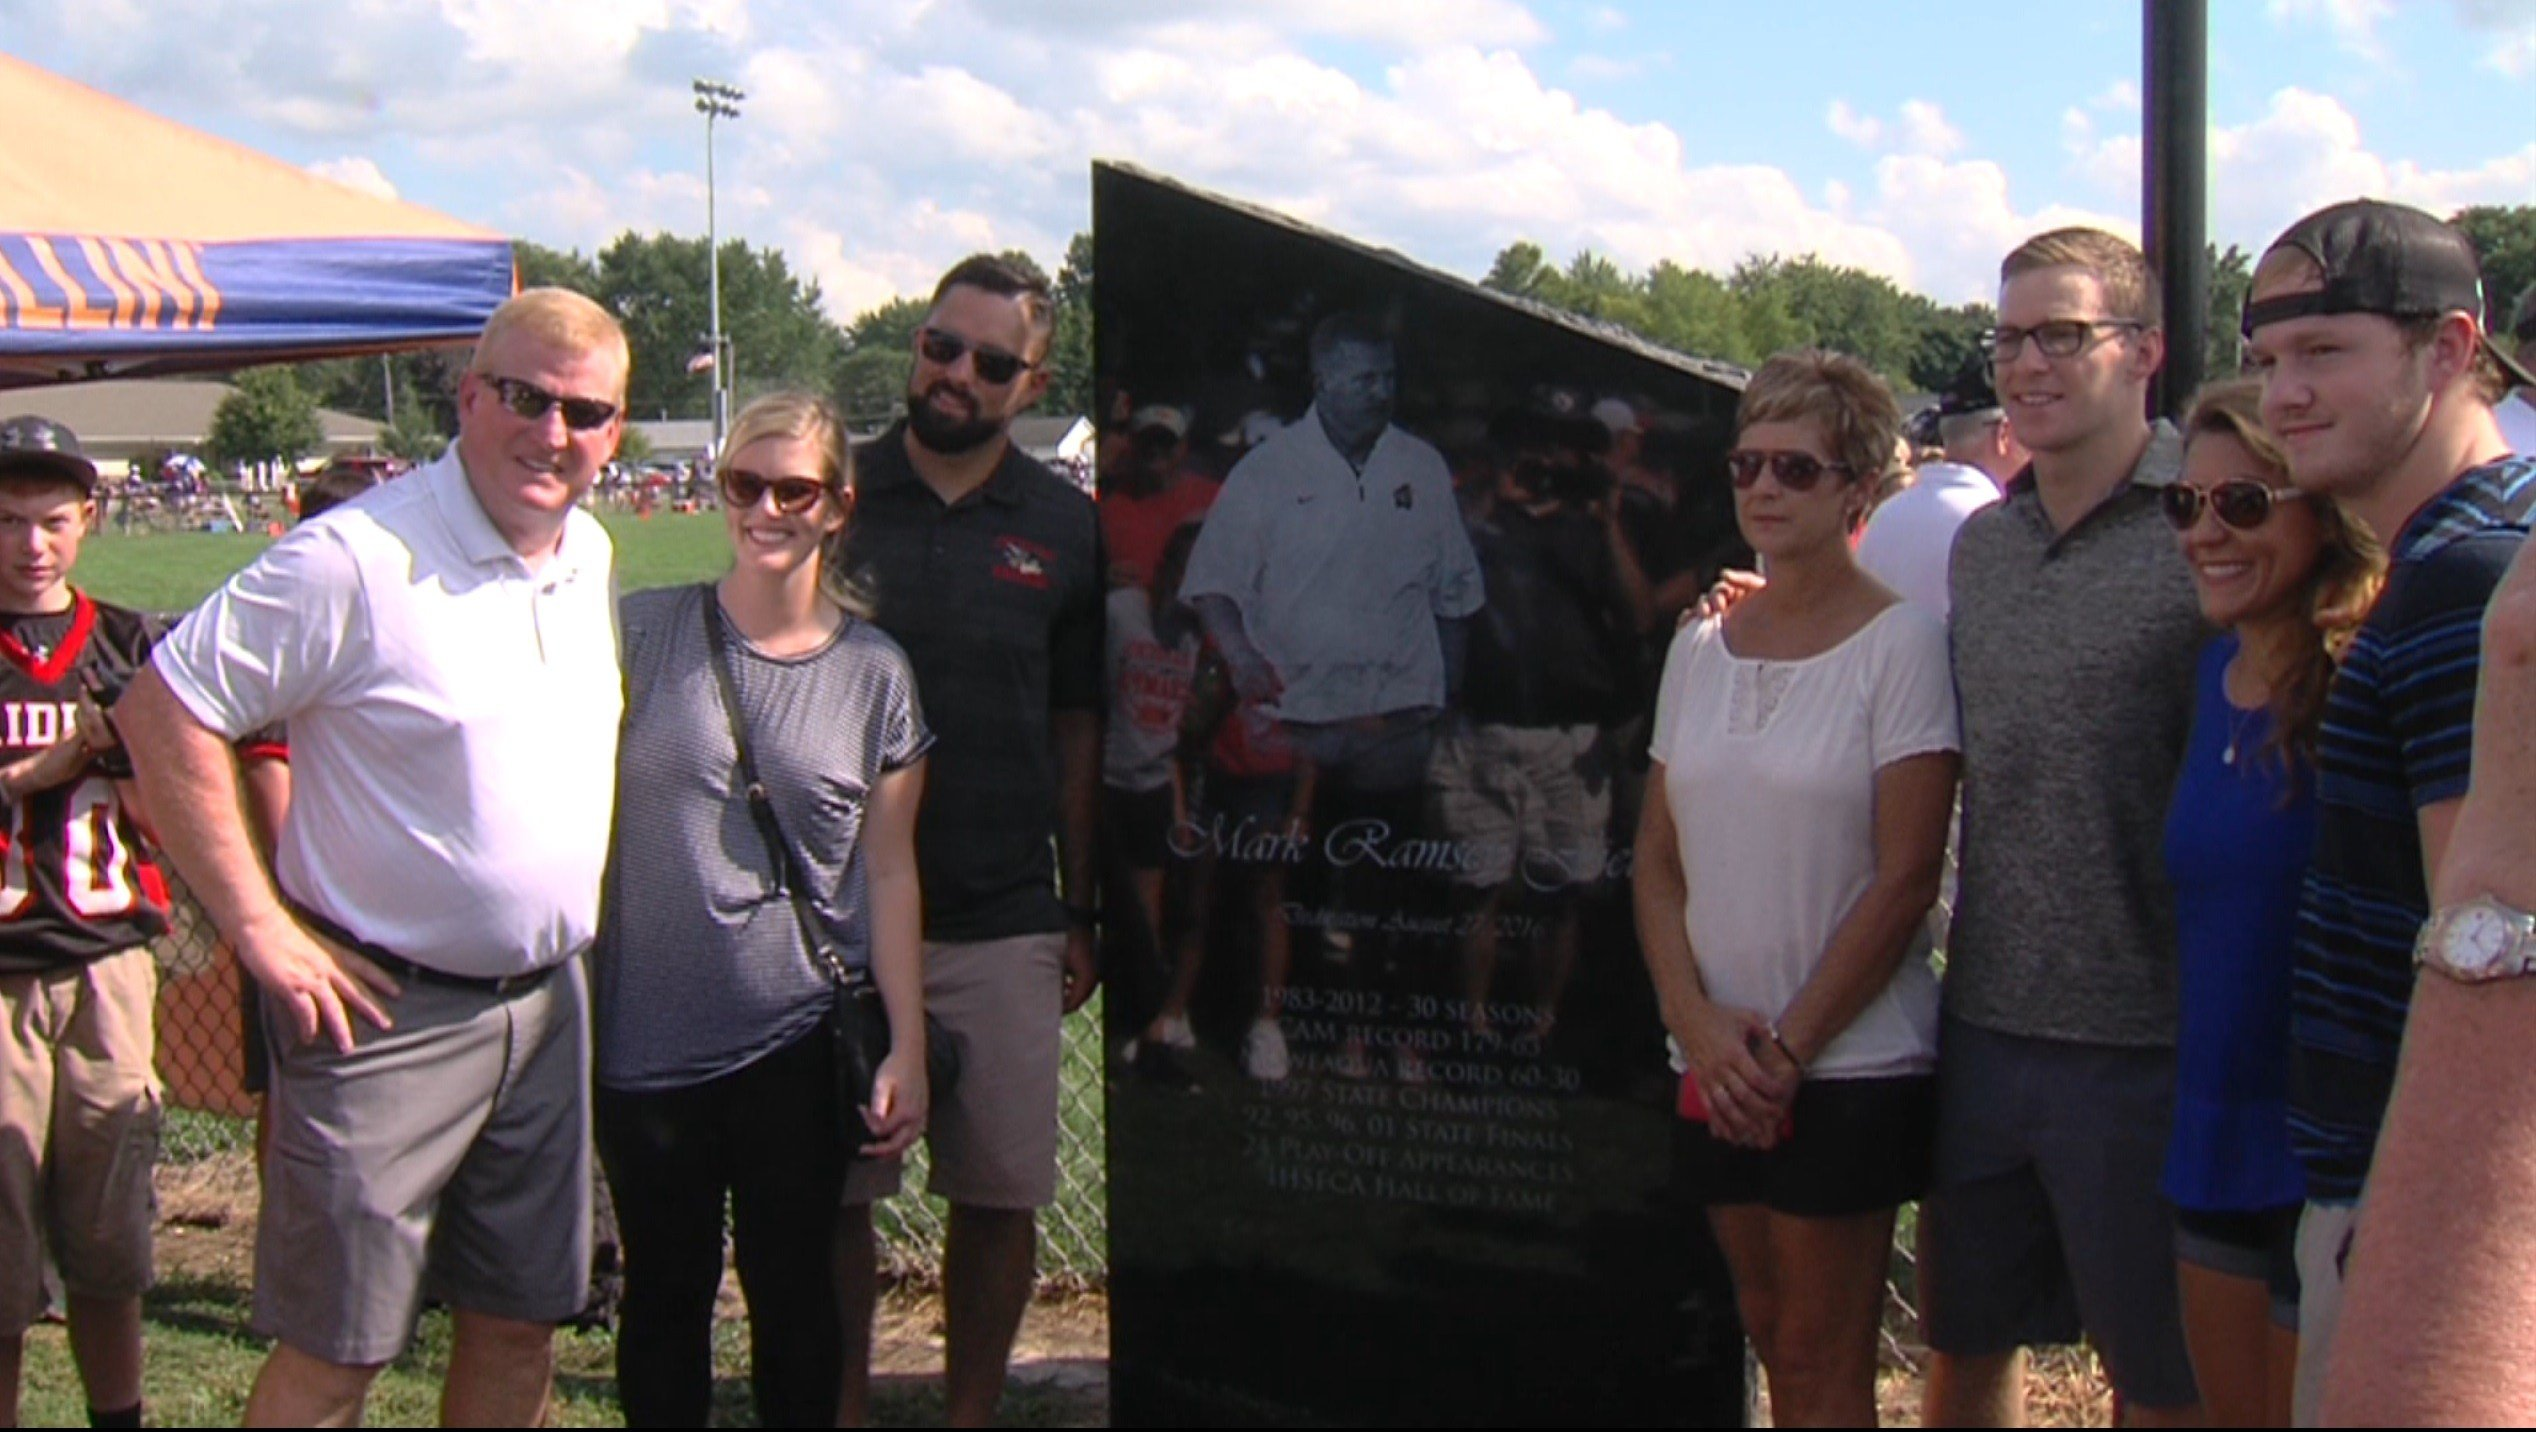 Mark Ramsey poses with family in front of new field marker